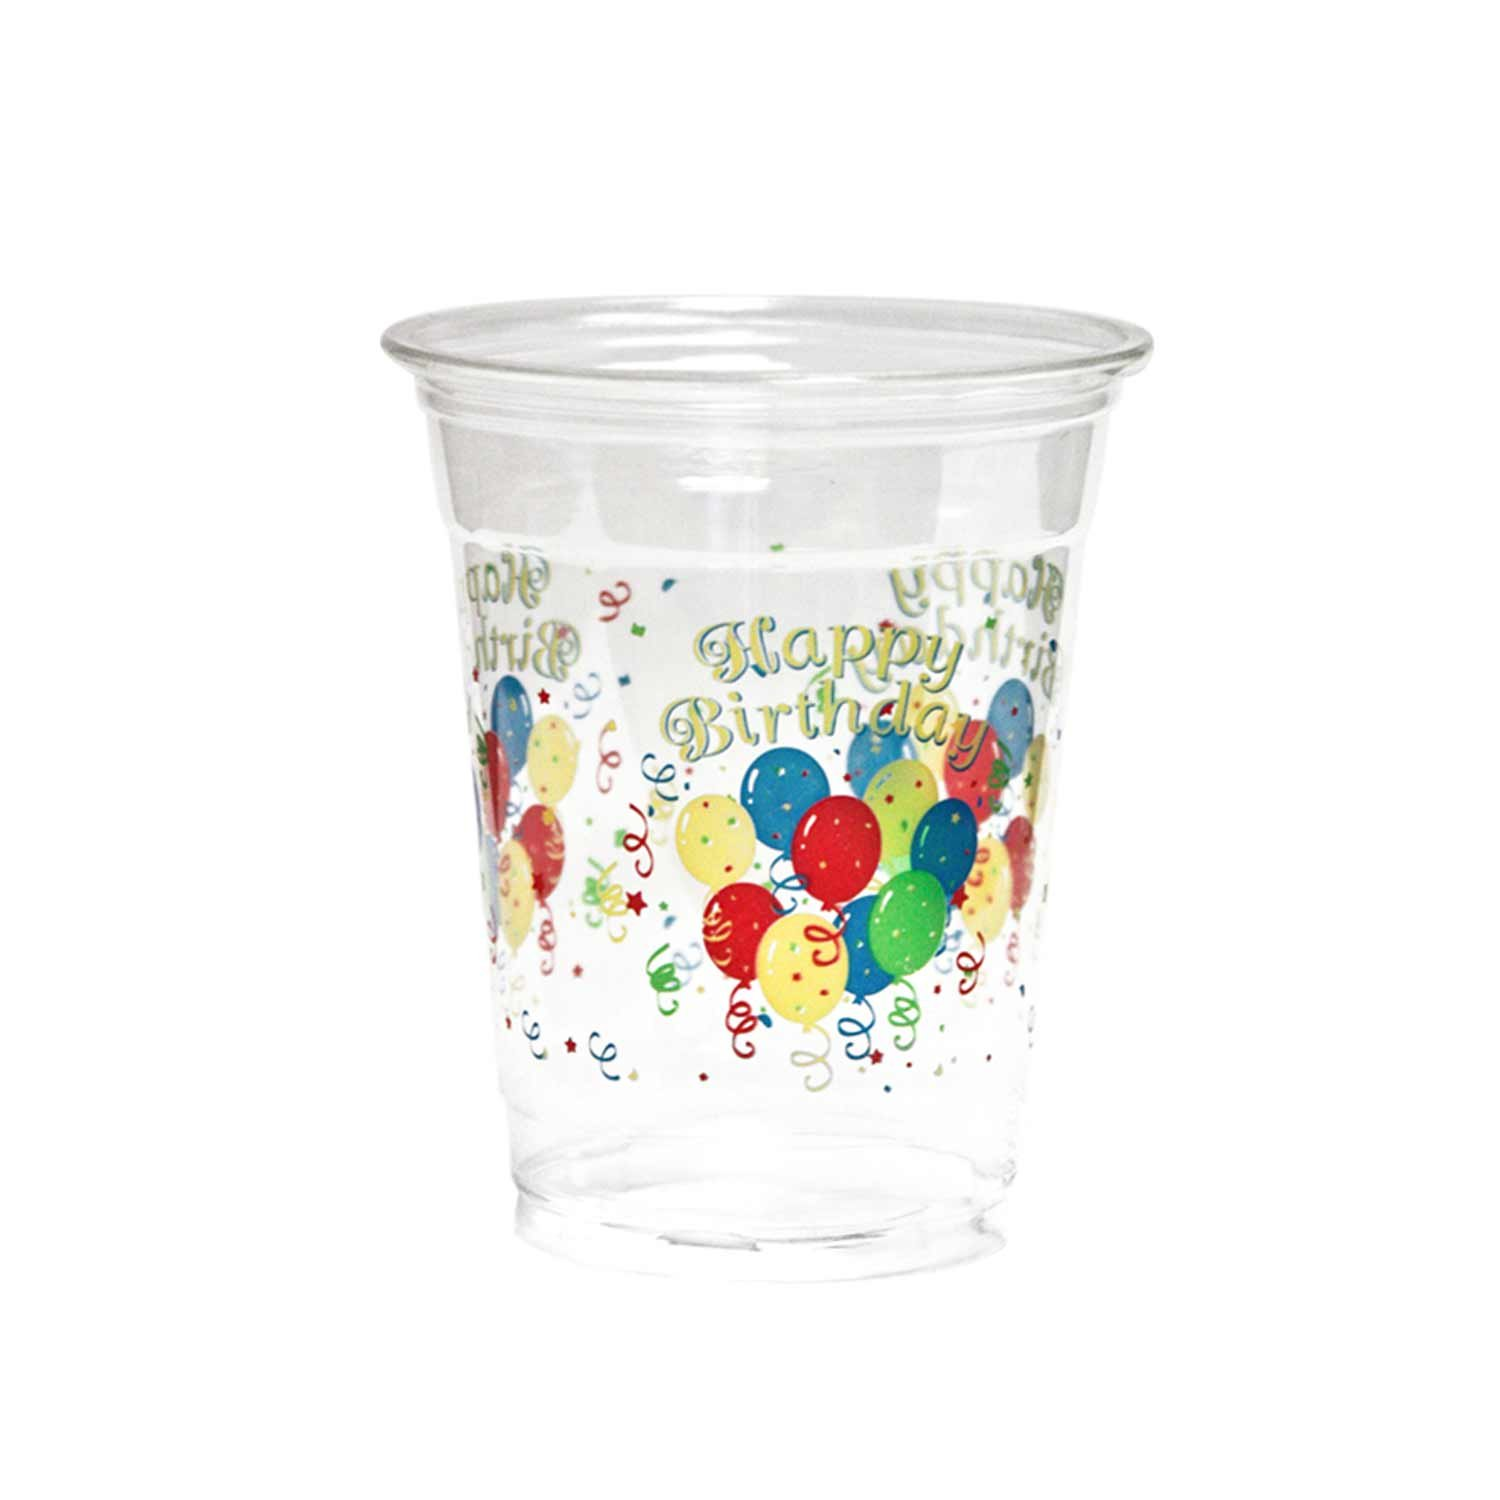 Party Essentials 20 Count Soft Plastic Printed Party Cups, 12-Ounce, Happy Birthday